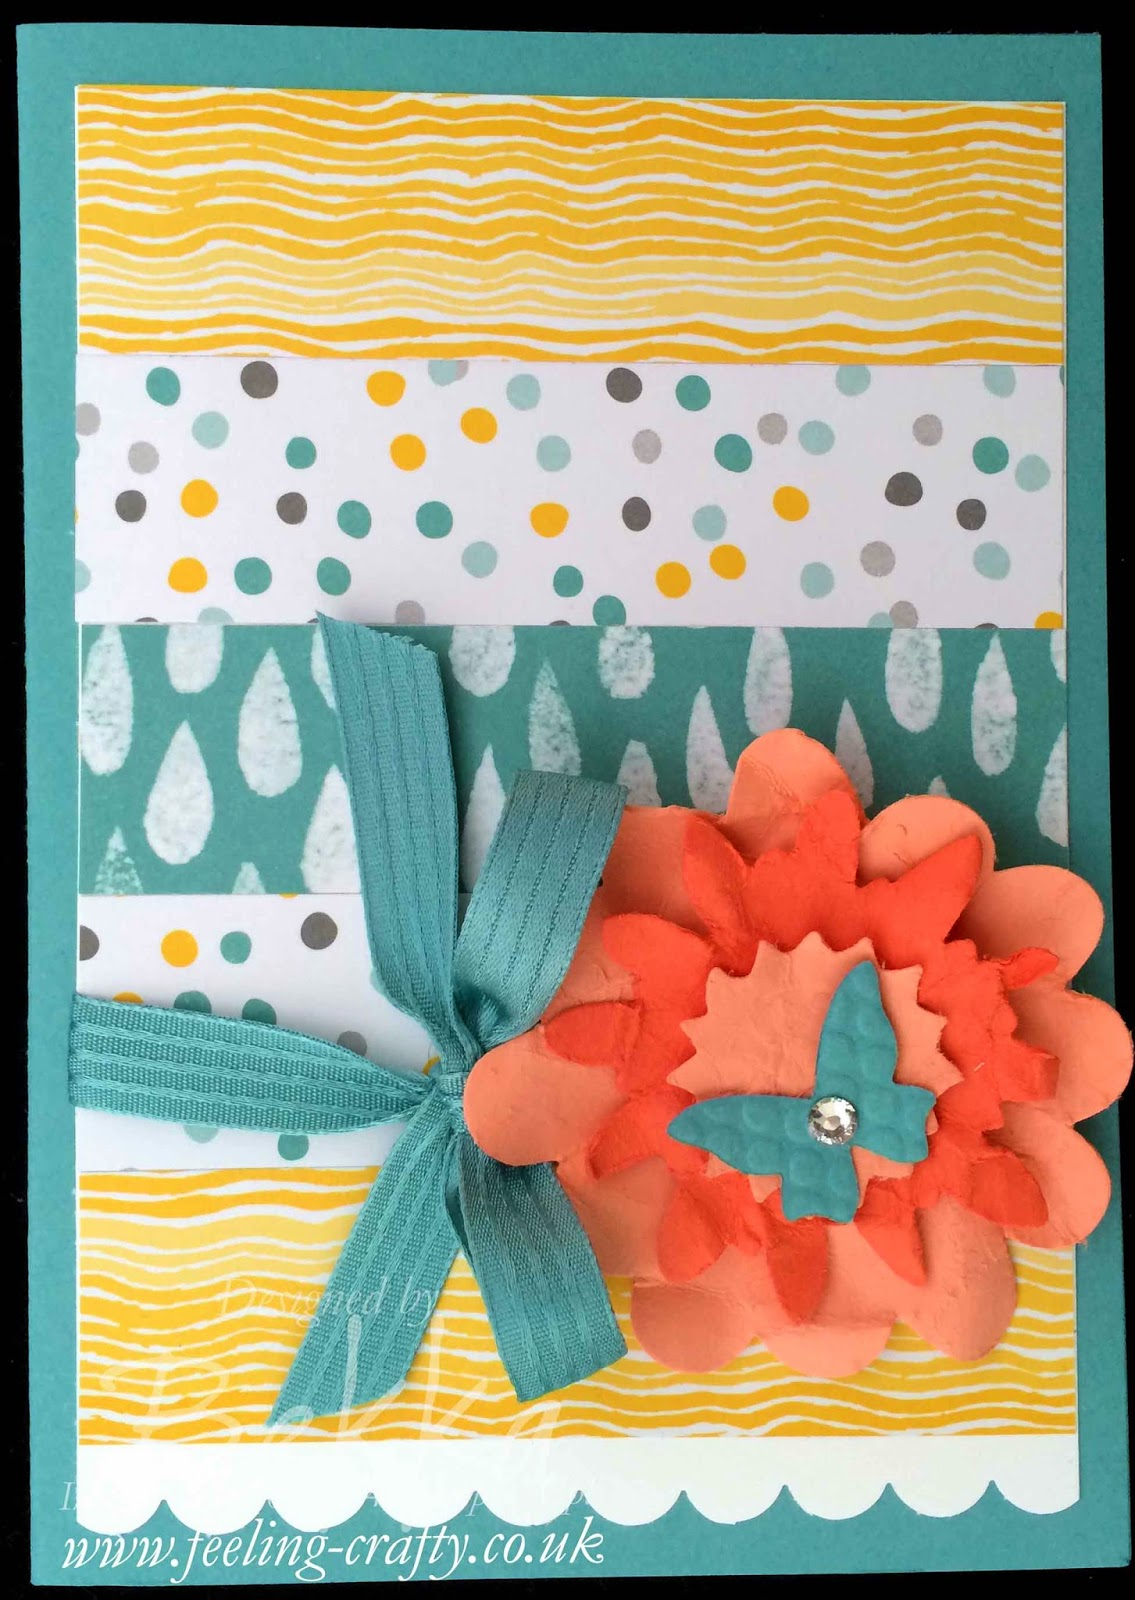 Cheery Floral Card made using up Scraps of Patterned Paper - check this blog for lots of cute ideas